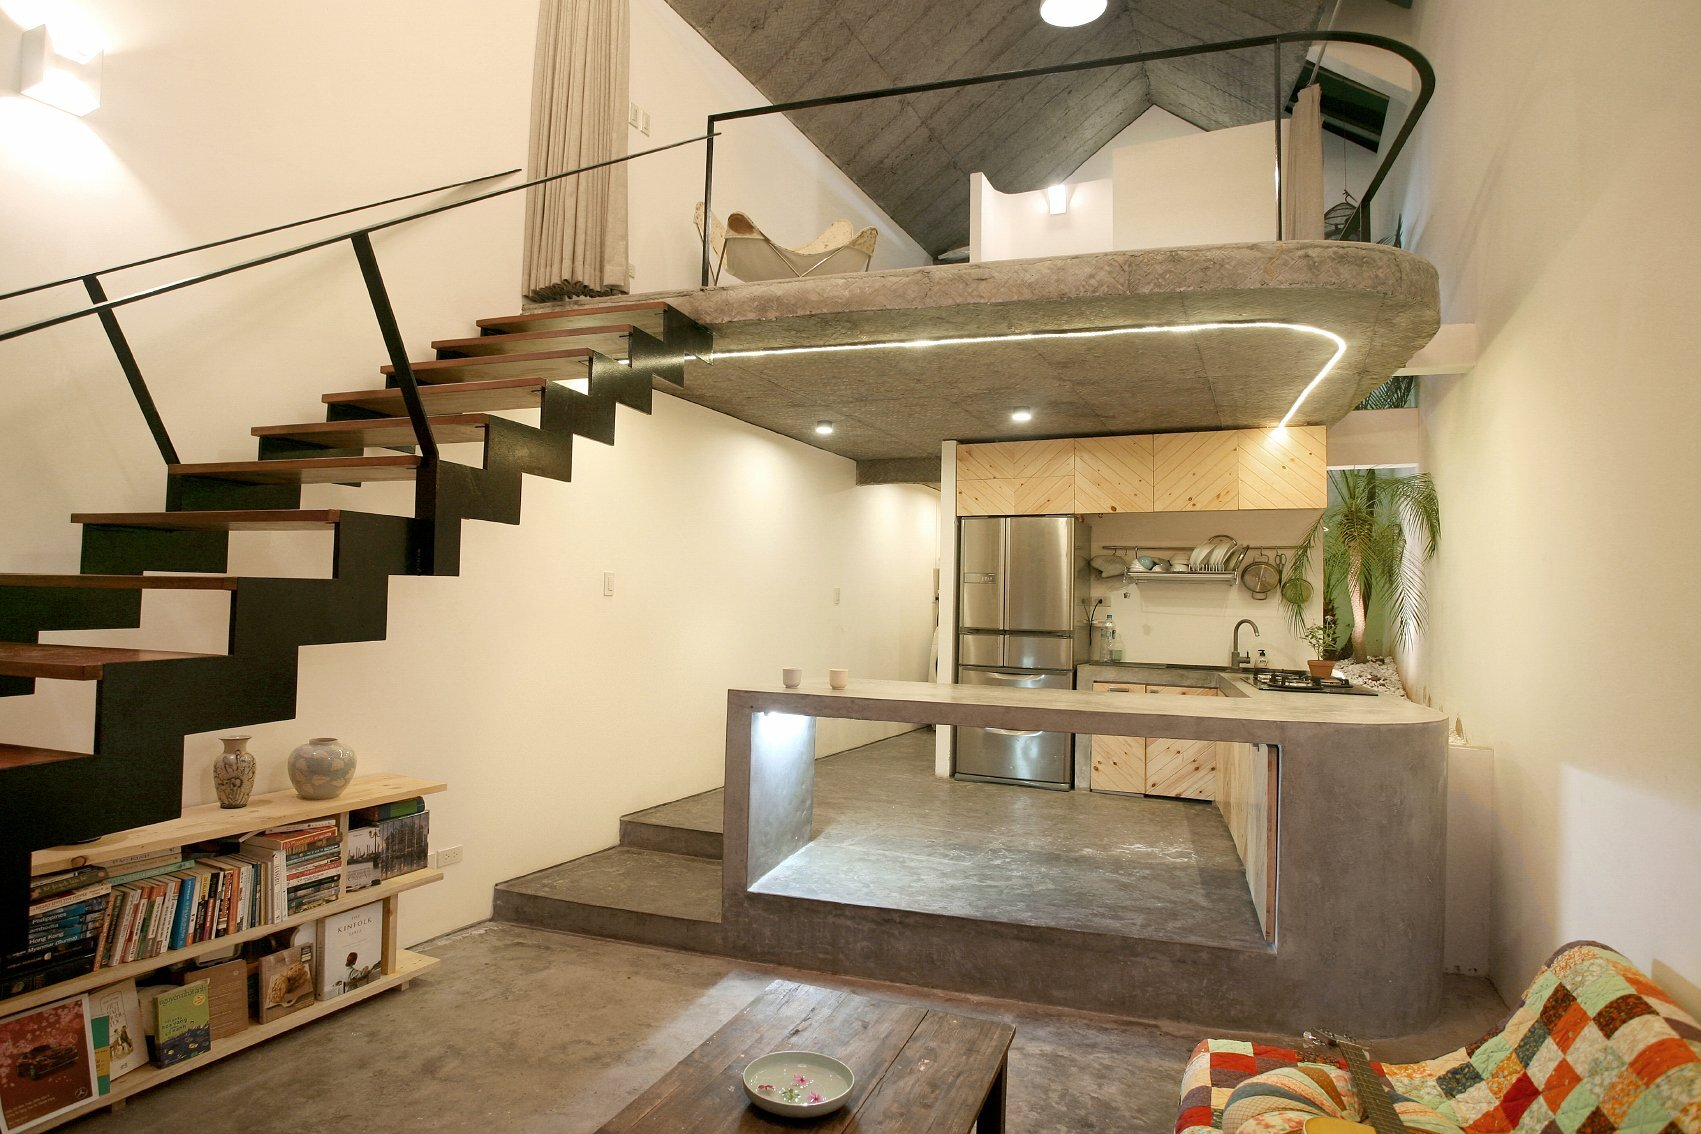 Maison T - Nghia-Architect - Vietnam - Living Area and Kitchen - Humble Homes